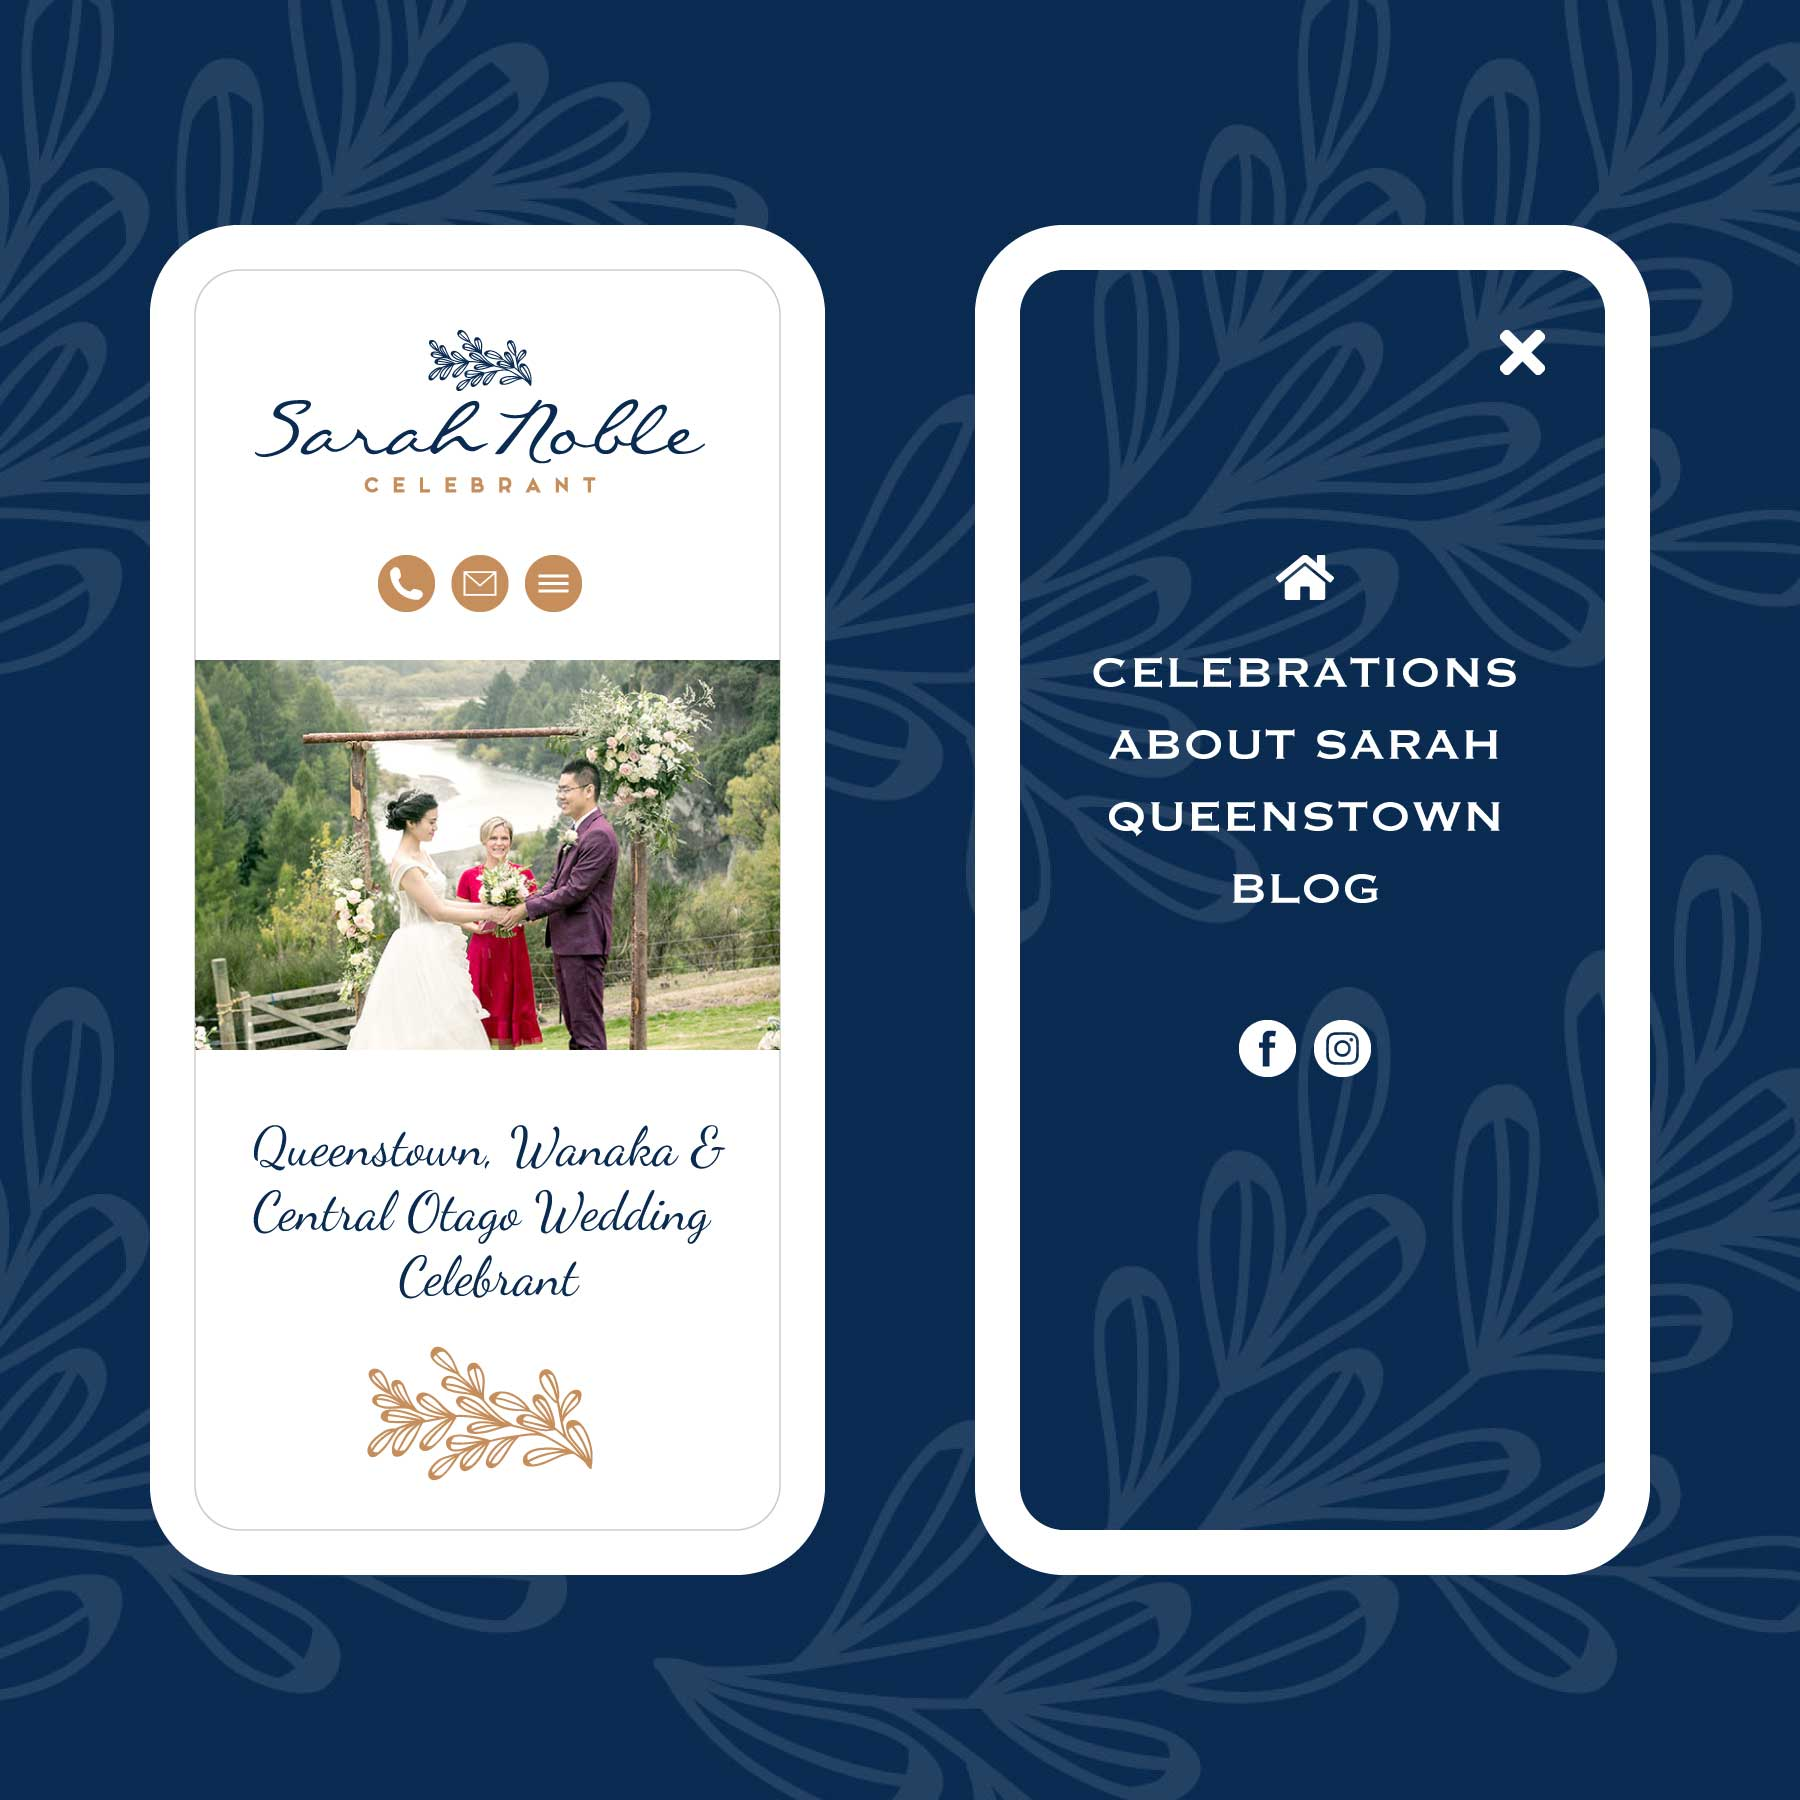 Sarah Noble Marriage Celebrant Queenstown Web Design